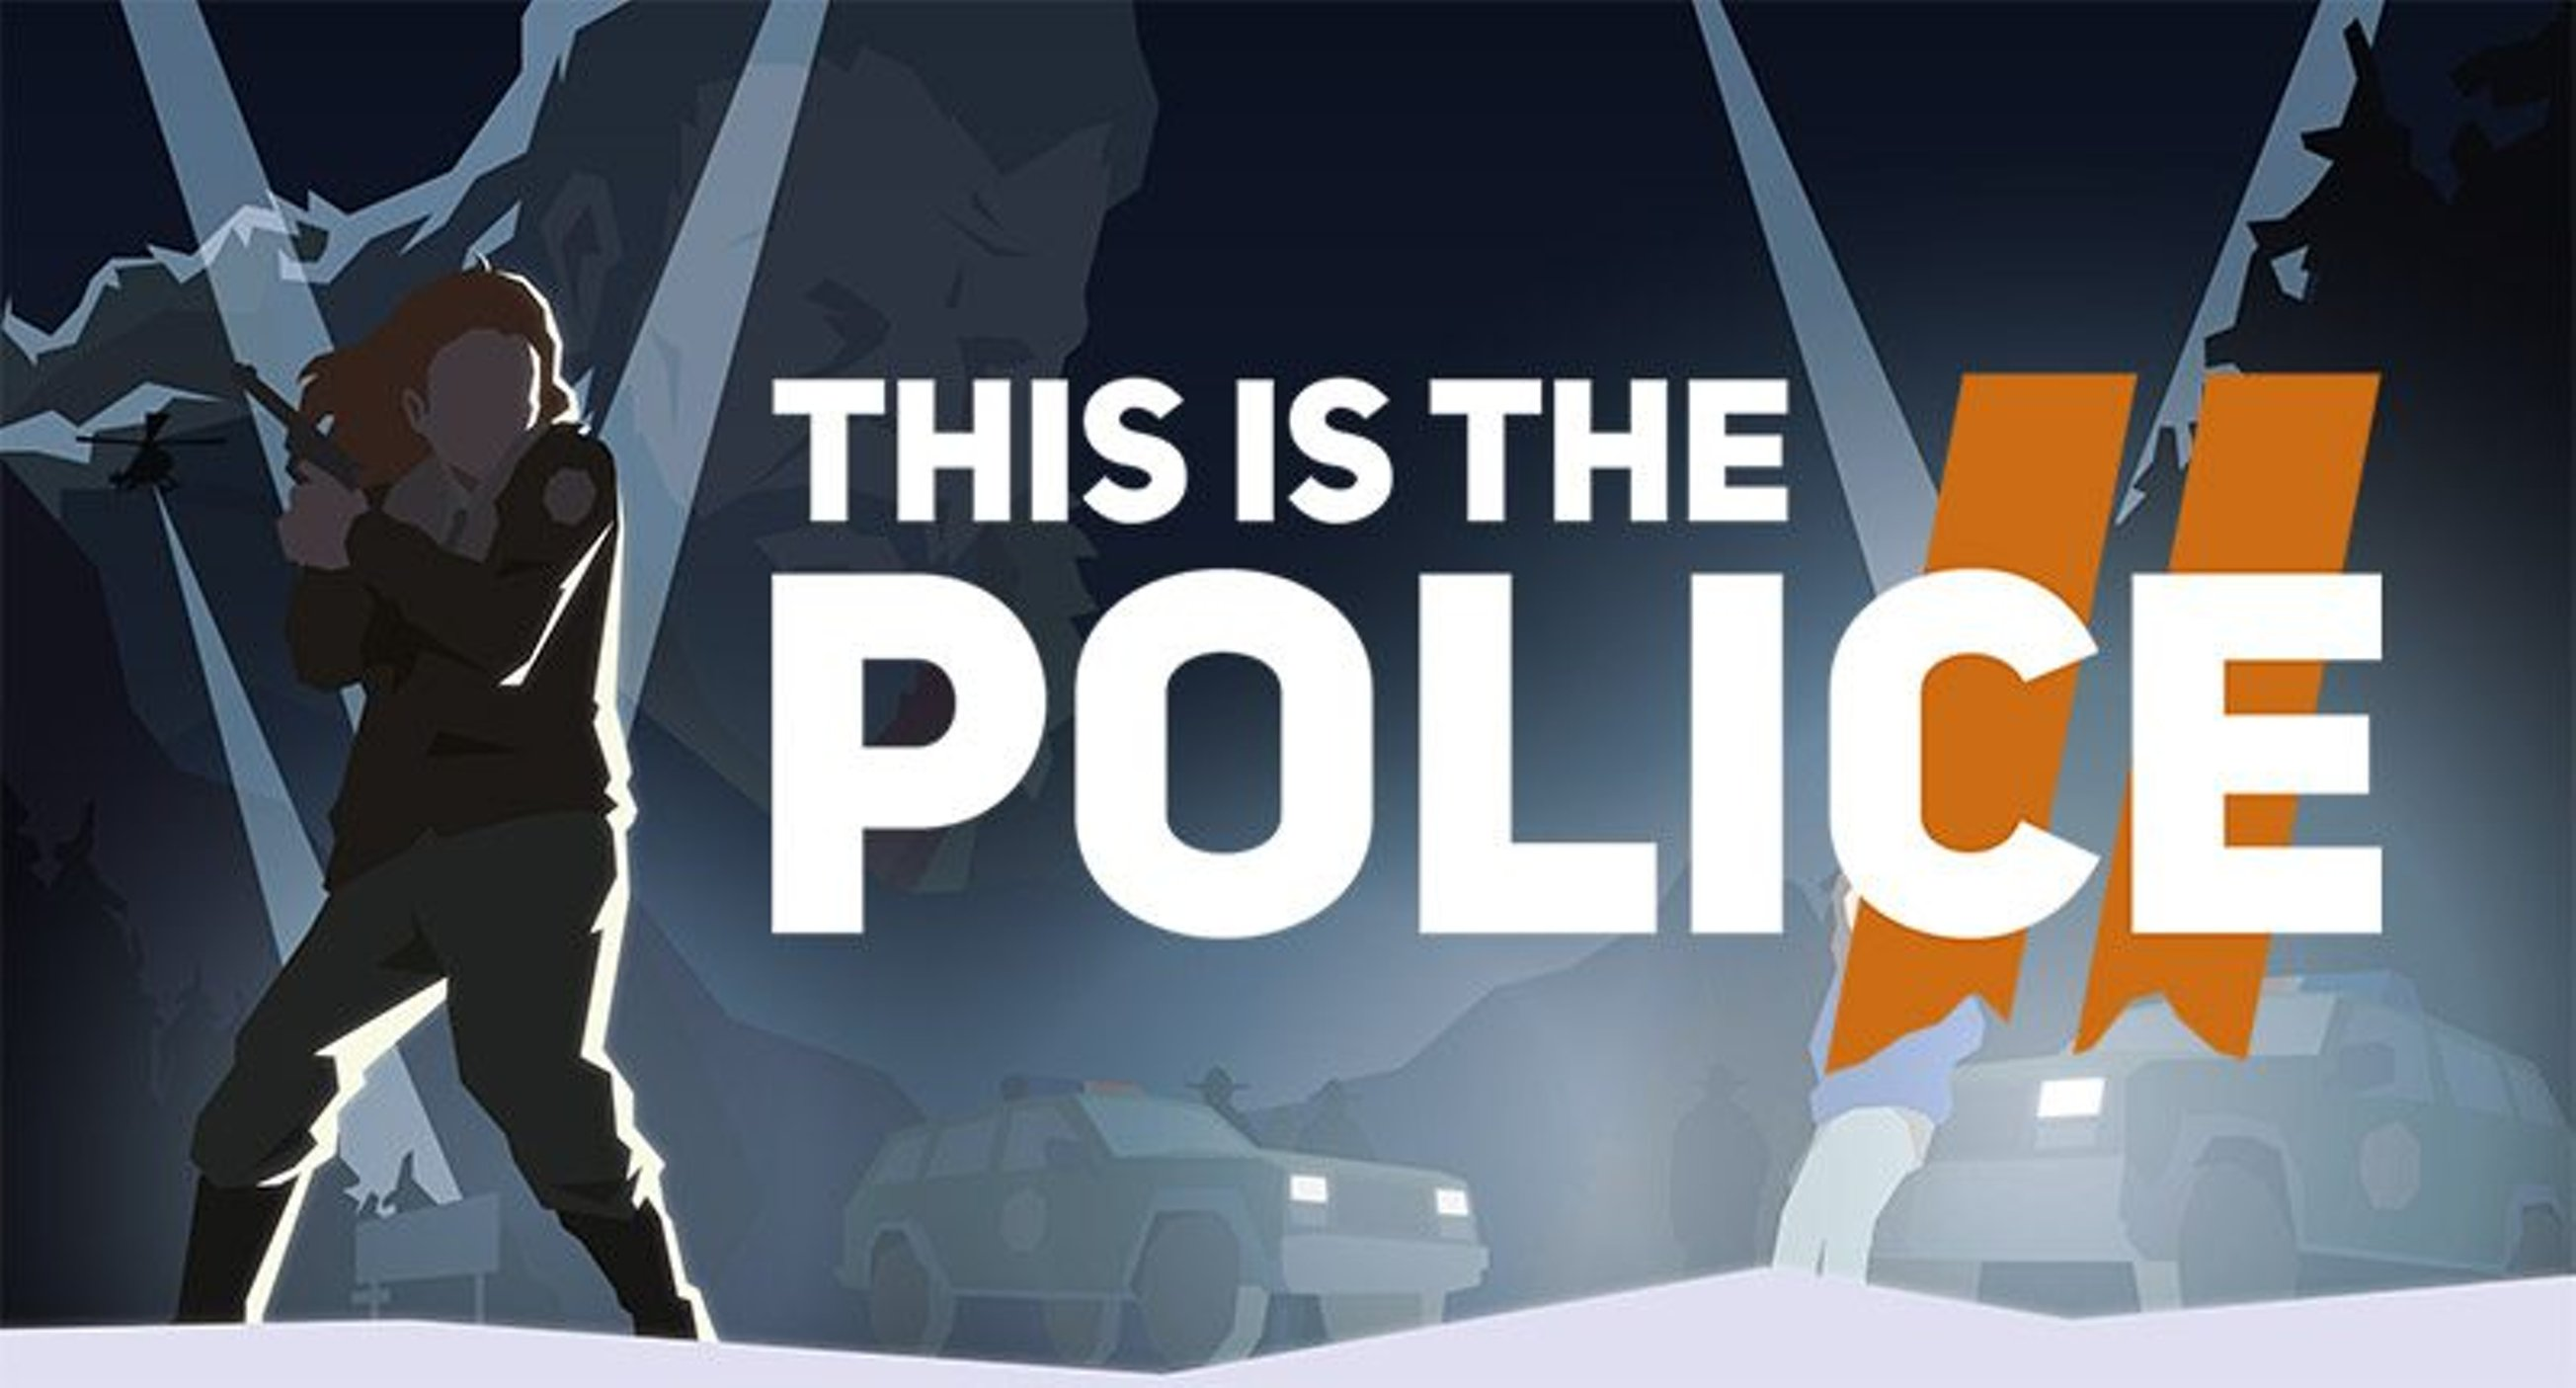 Новый трейлер This Is the Police 2